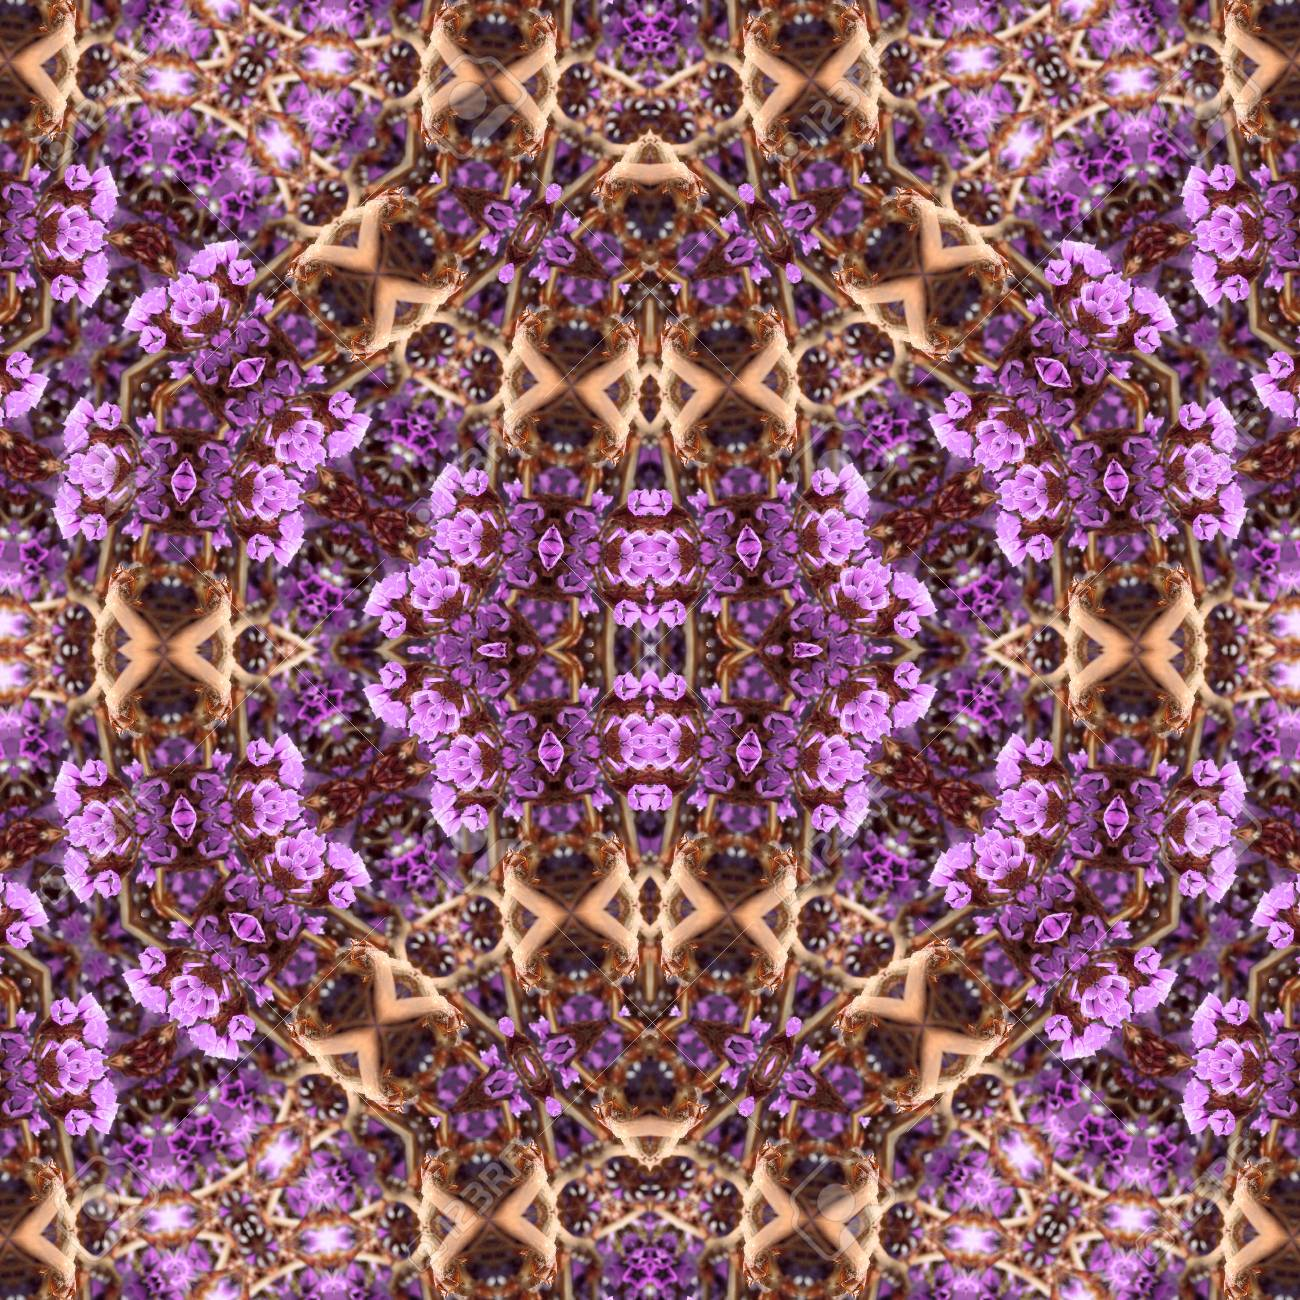 Abstract flowers seamless pattern background. Kaleidoscope from flowers. Hydraulic tile design. - 104075081